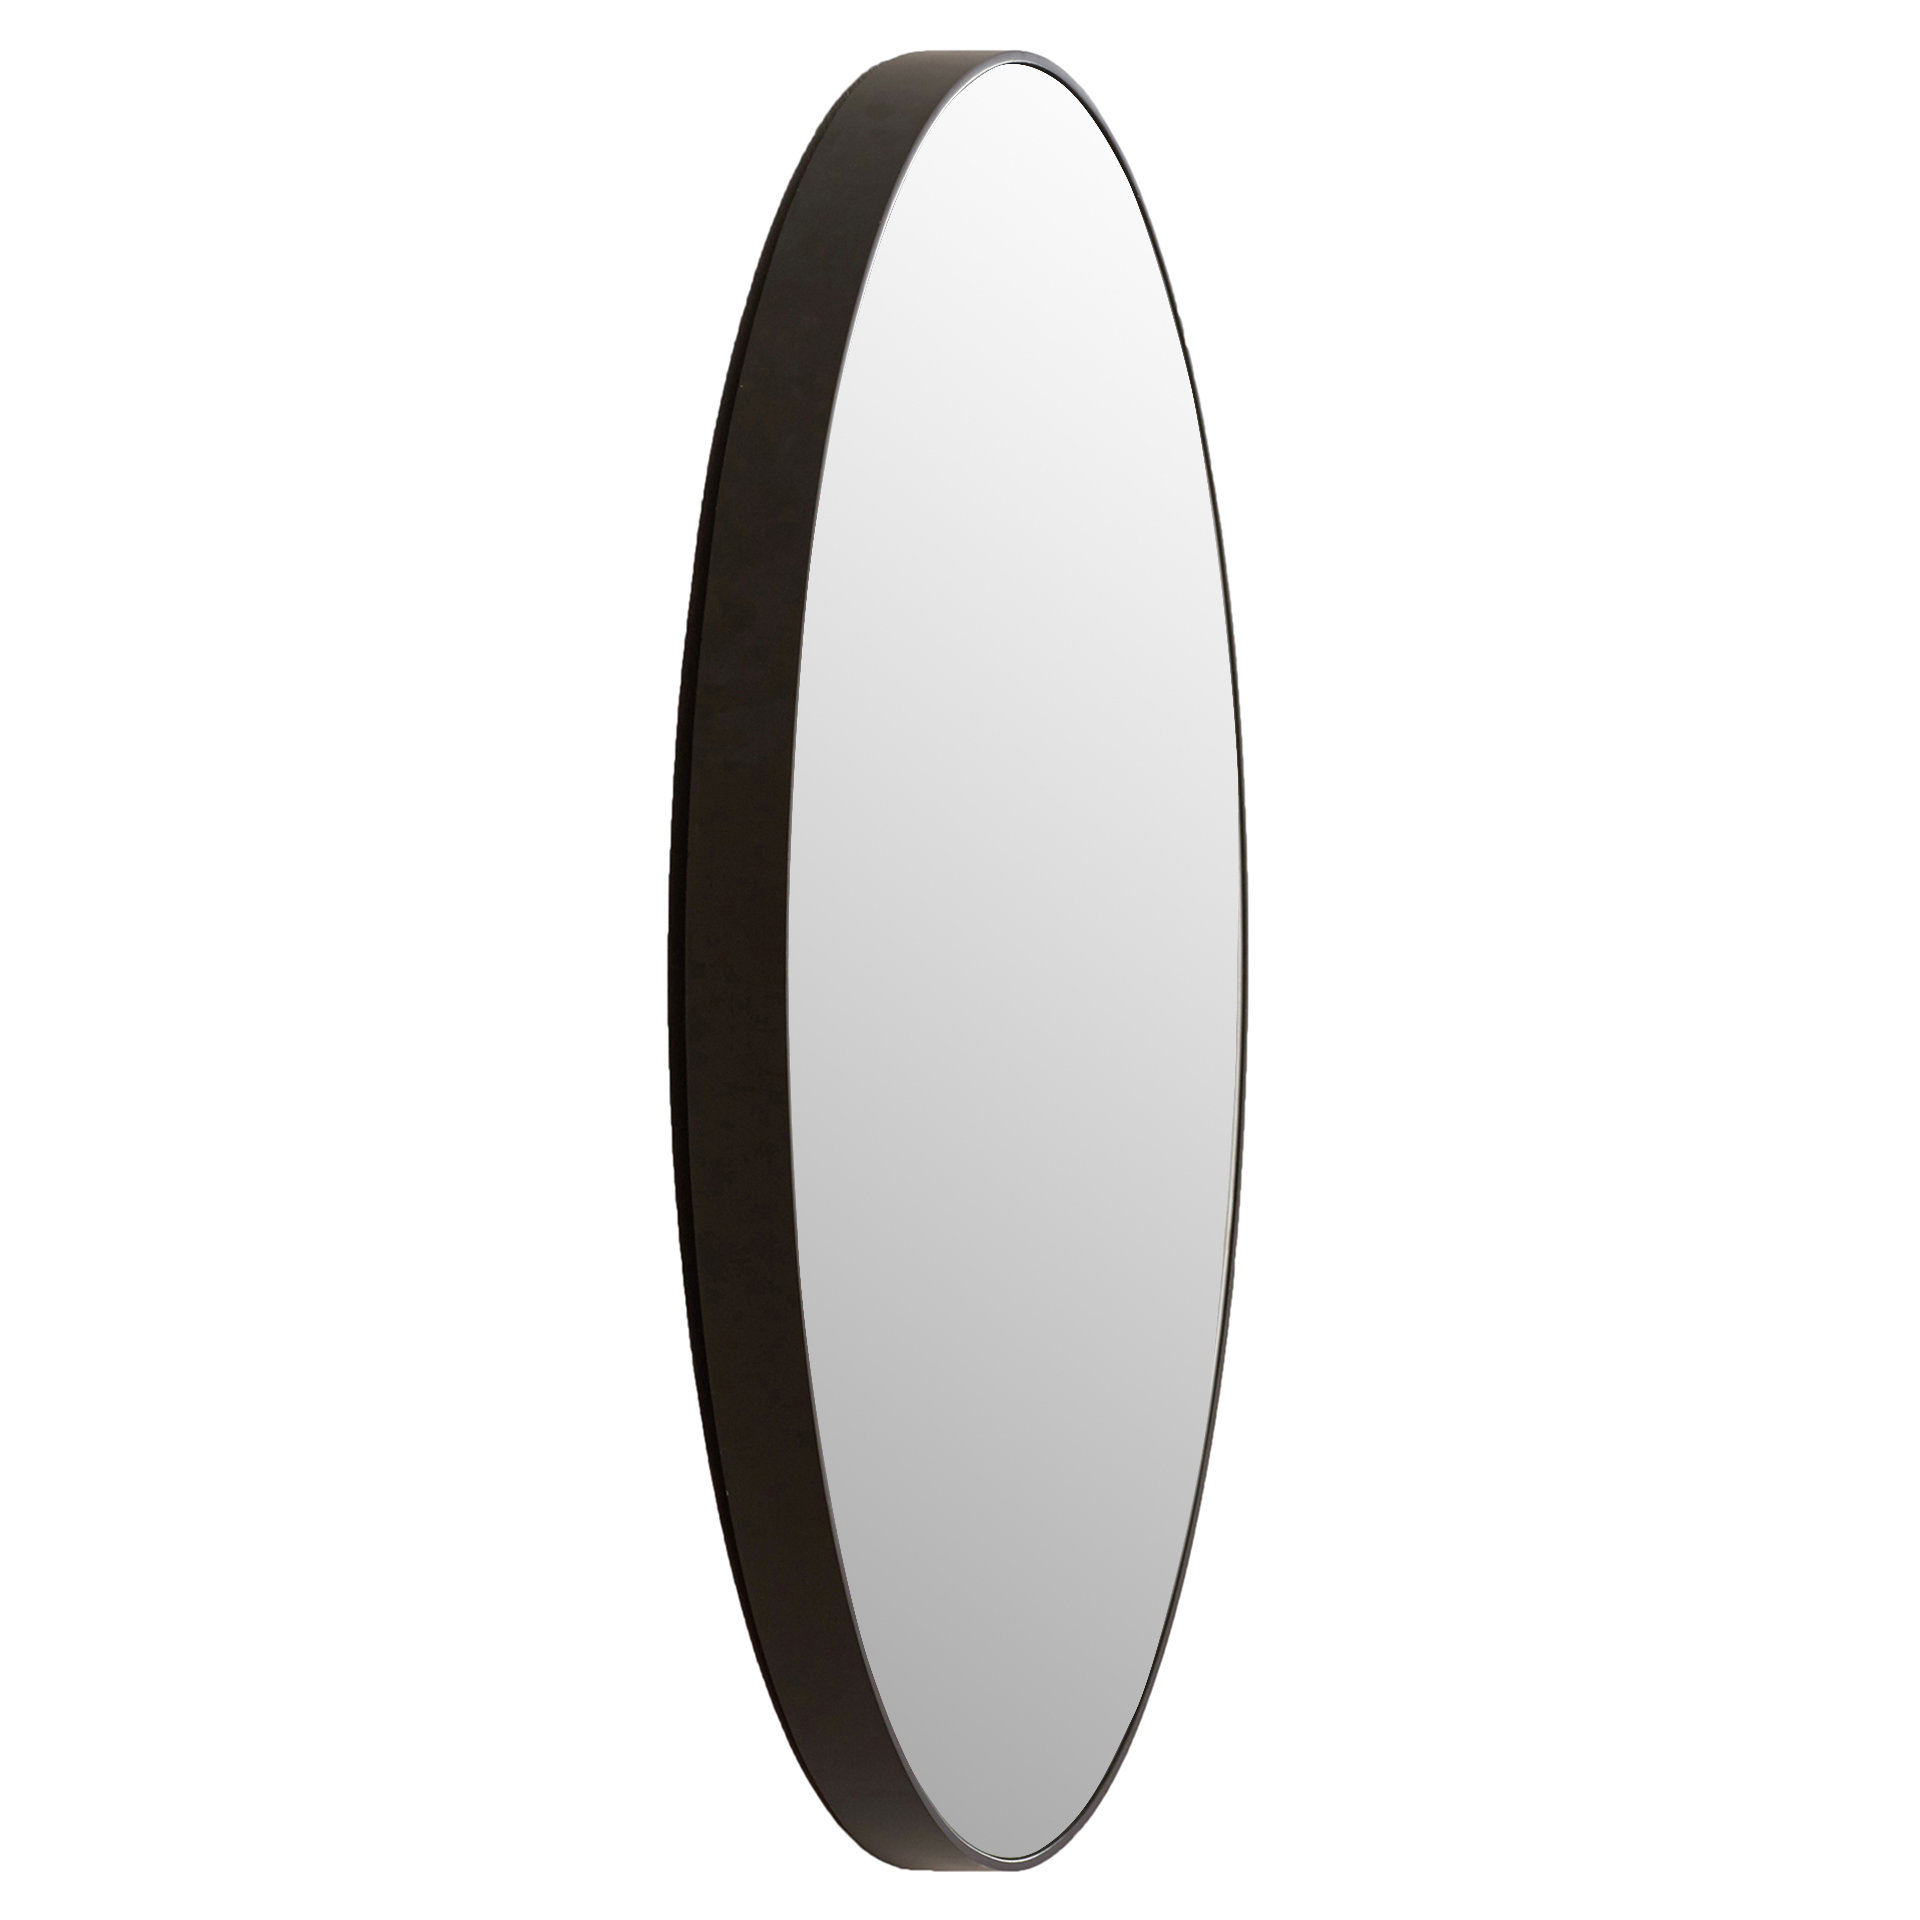 Farmhouse & Rustic Wade Logan Wall & Accent Mirrors | Birch Lane With Gaunts Earthcott Modern & Contemporary Beveled Accent Mirrors (View 18 of 20)